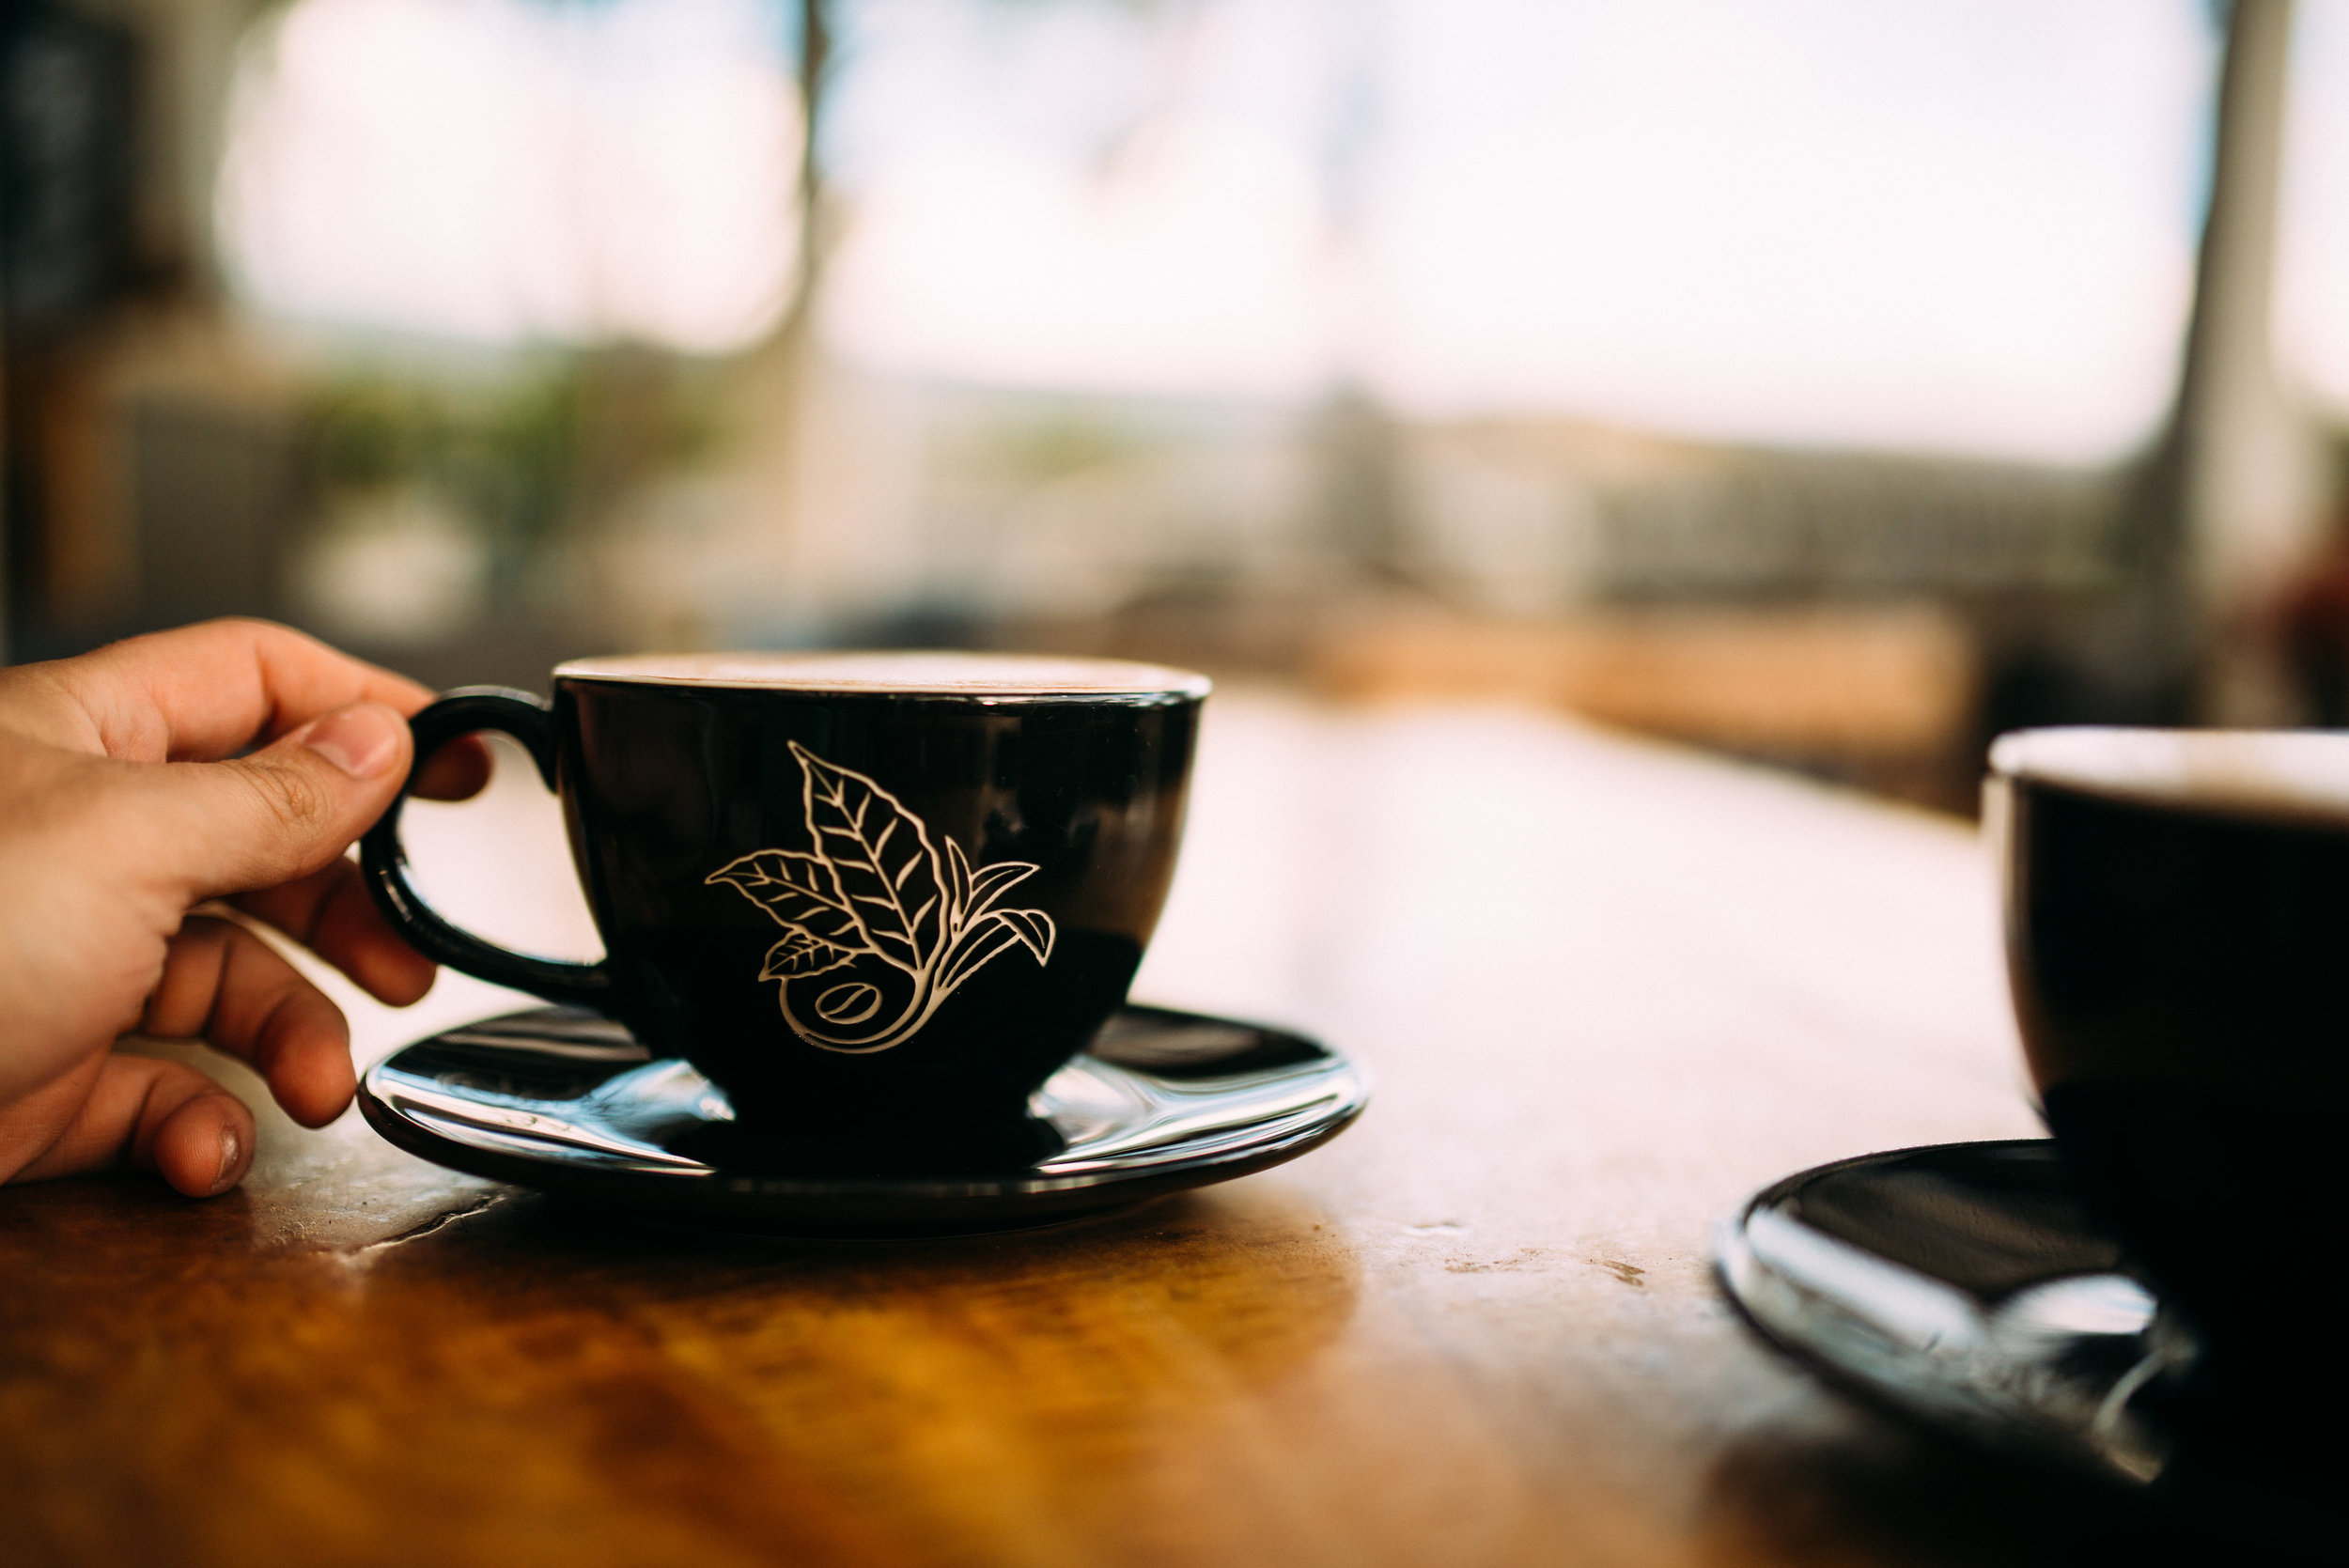 Learning and sharing ideas over coffee and tea PHOTO: Blake Wisz